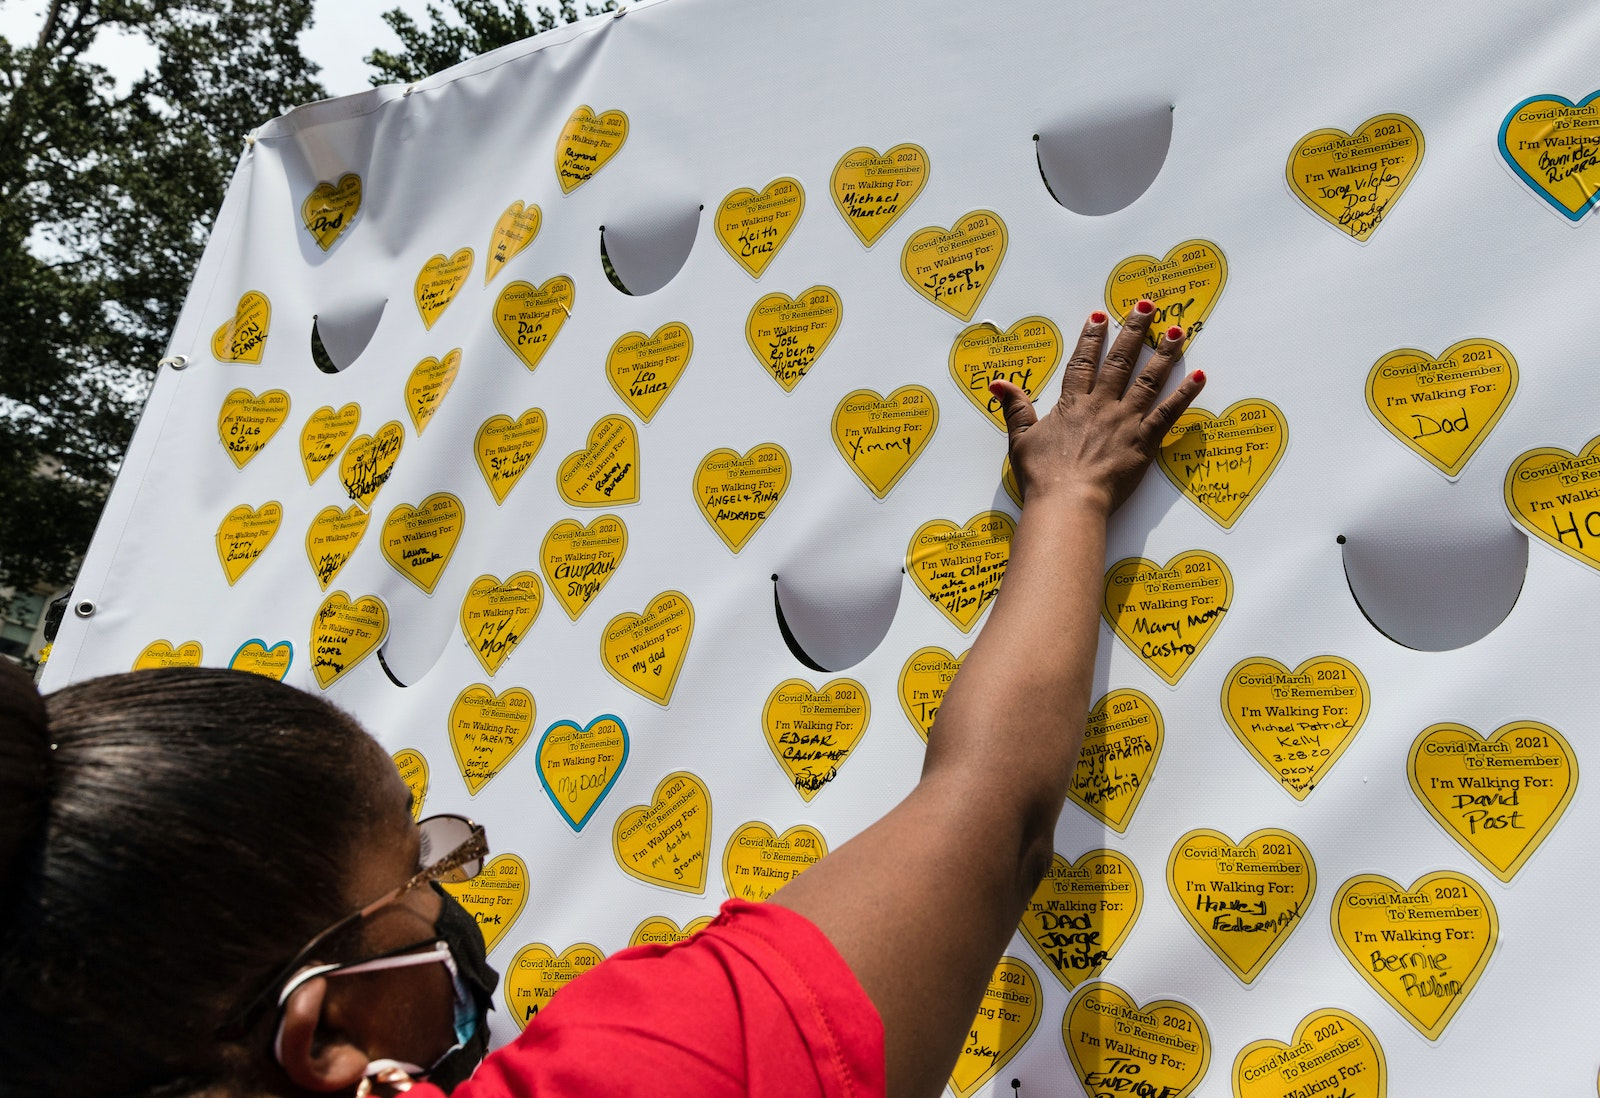 COVID-19 survivors gather in New York and place stickers representing lost relatives on a wall in remembrance of those who have died during the pandemic.